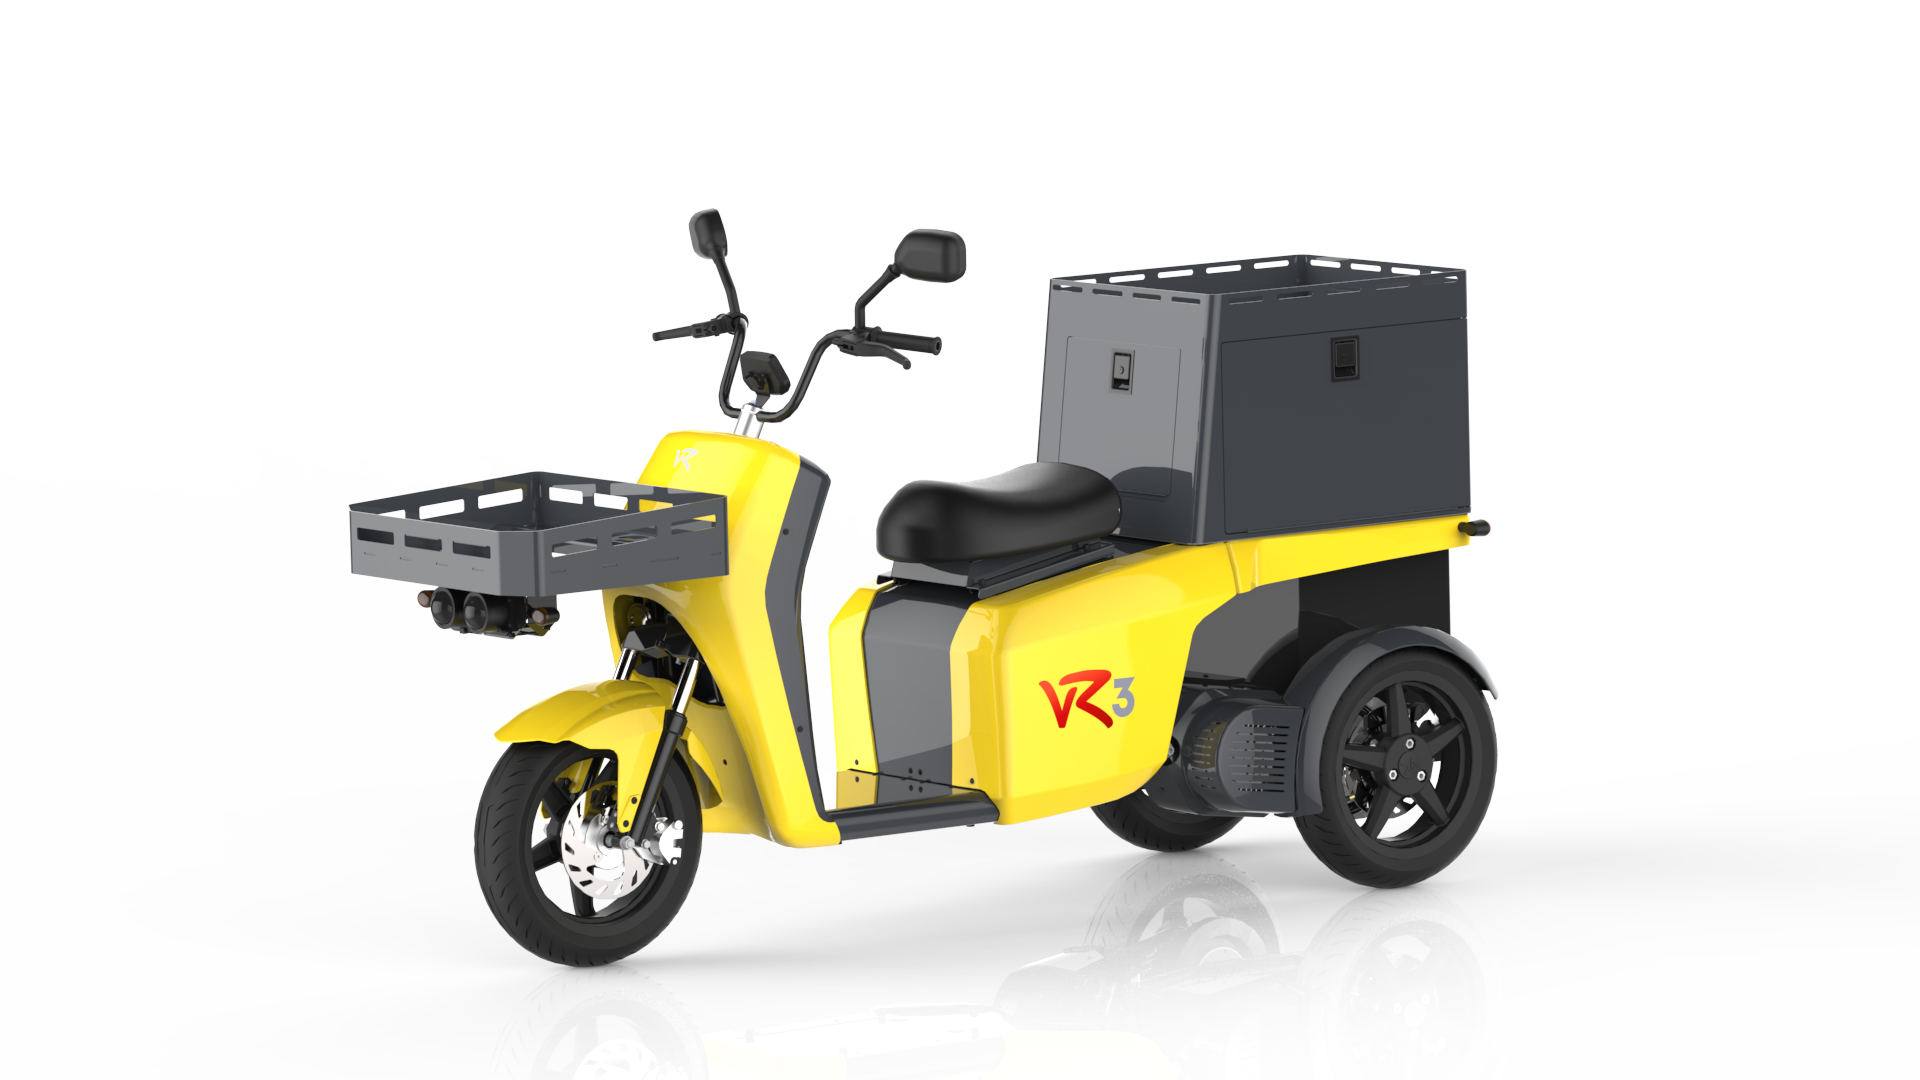 The vR3 electric tricycle as a postal vehicle